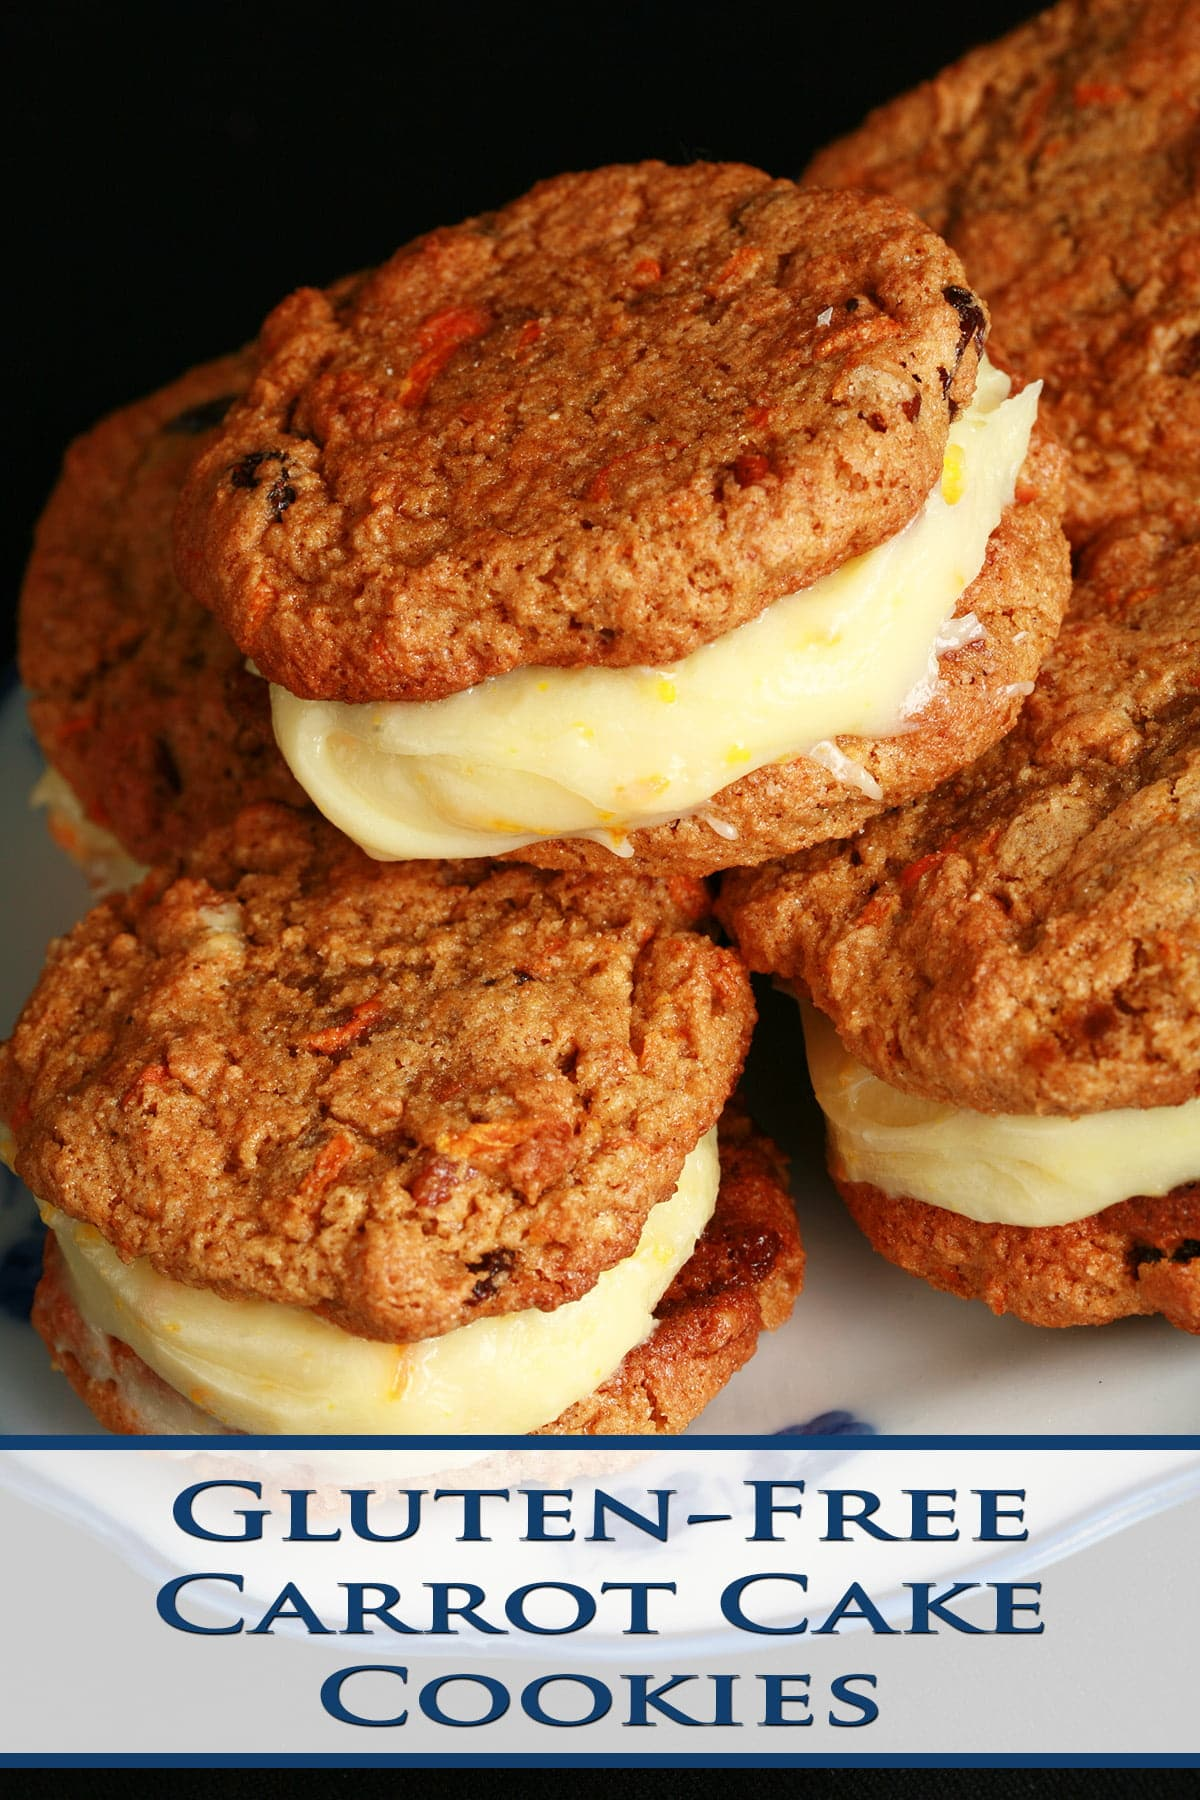 A small blue and white plate with a stack of gluten-free carrot cake sandwich cookies on it. The filling is ivory coloured and has flecks of orange zest throughout.